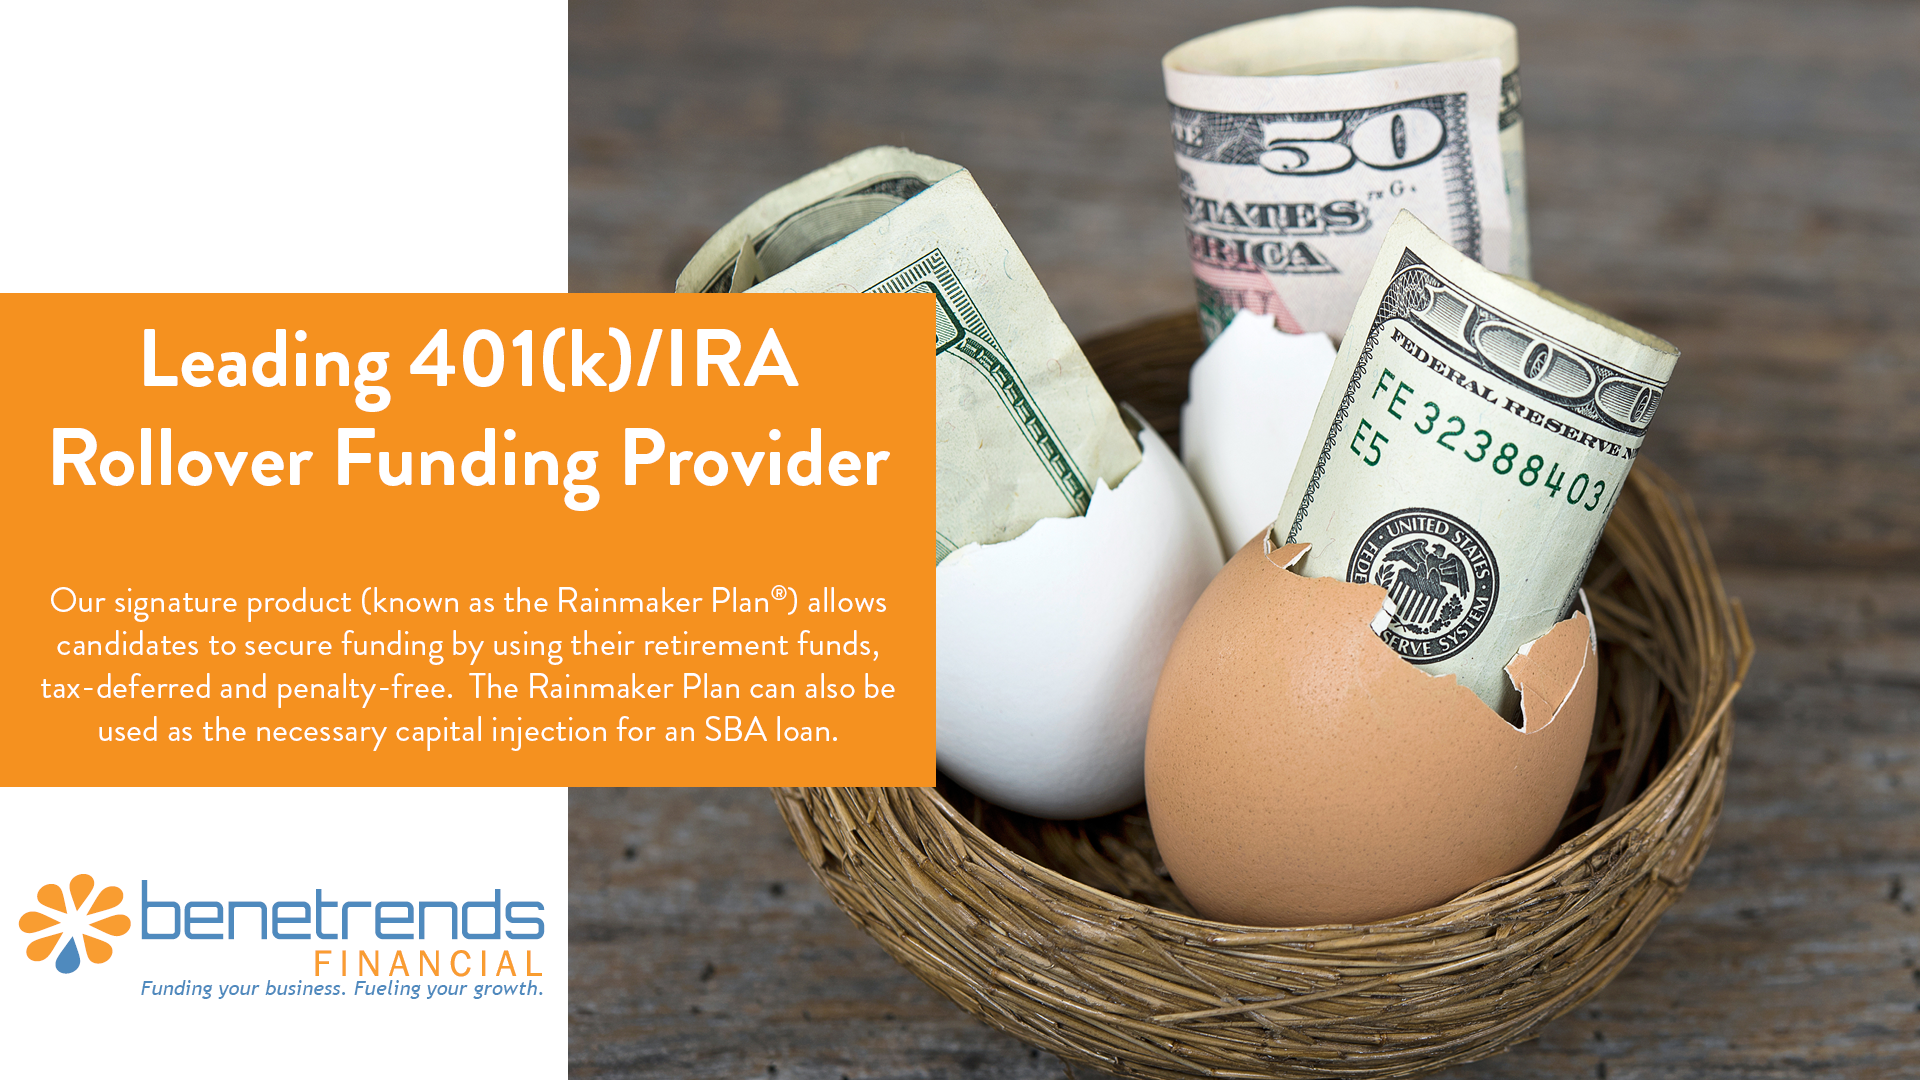 Benetrends Financial Leading 401(k)/IFA Rollover Funding Provider